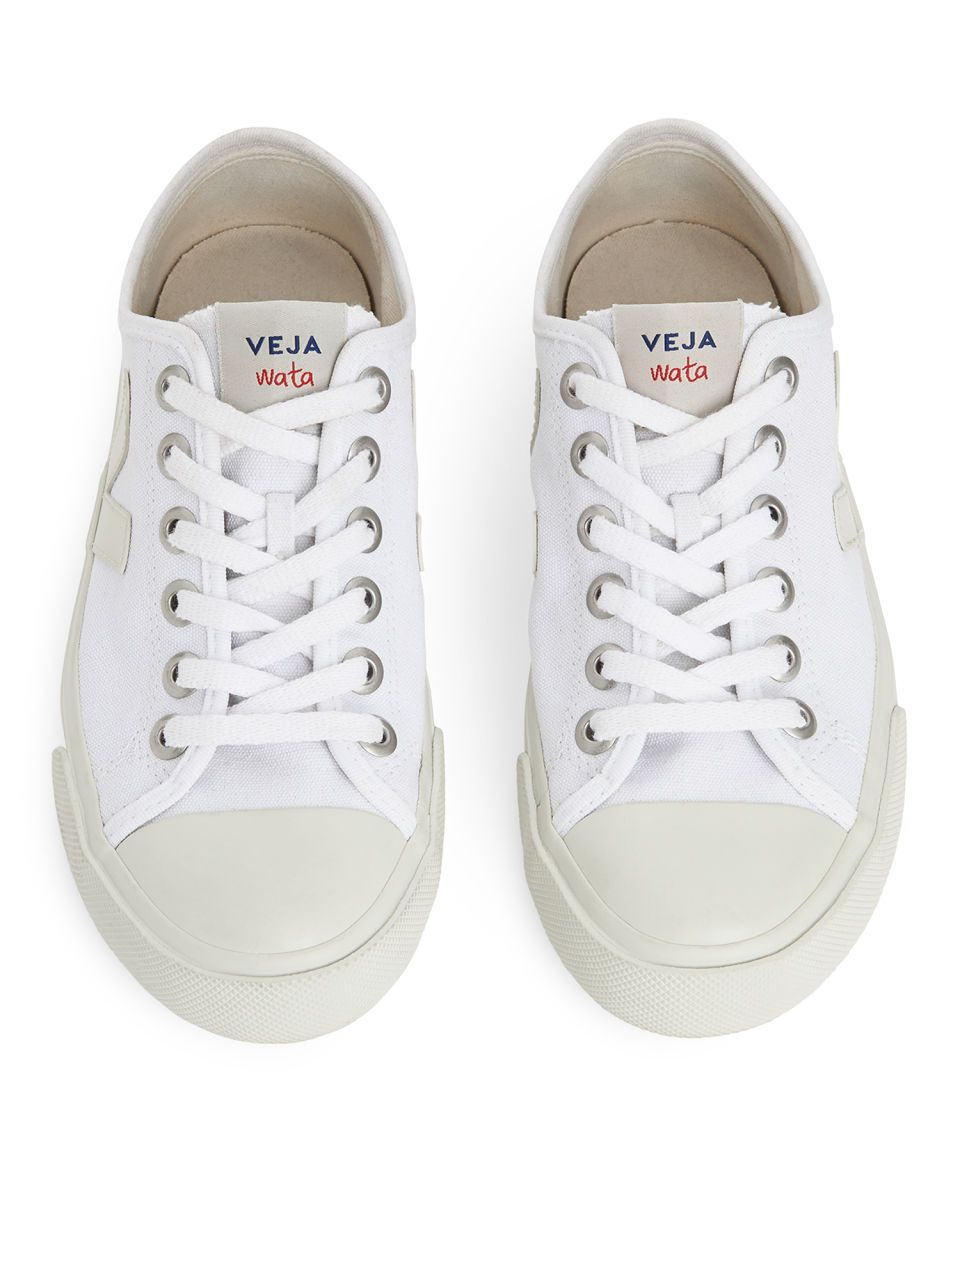 Veja Wata Trainers - White - Shoes